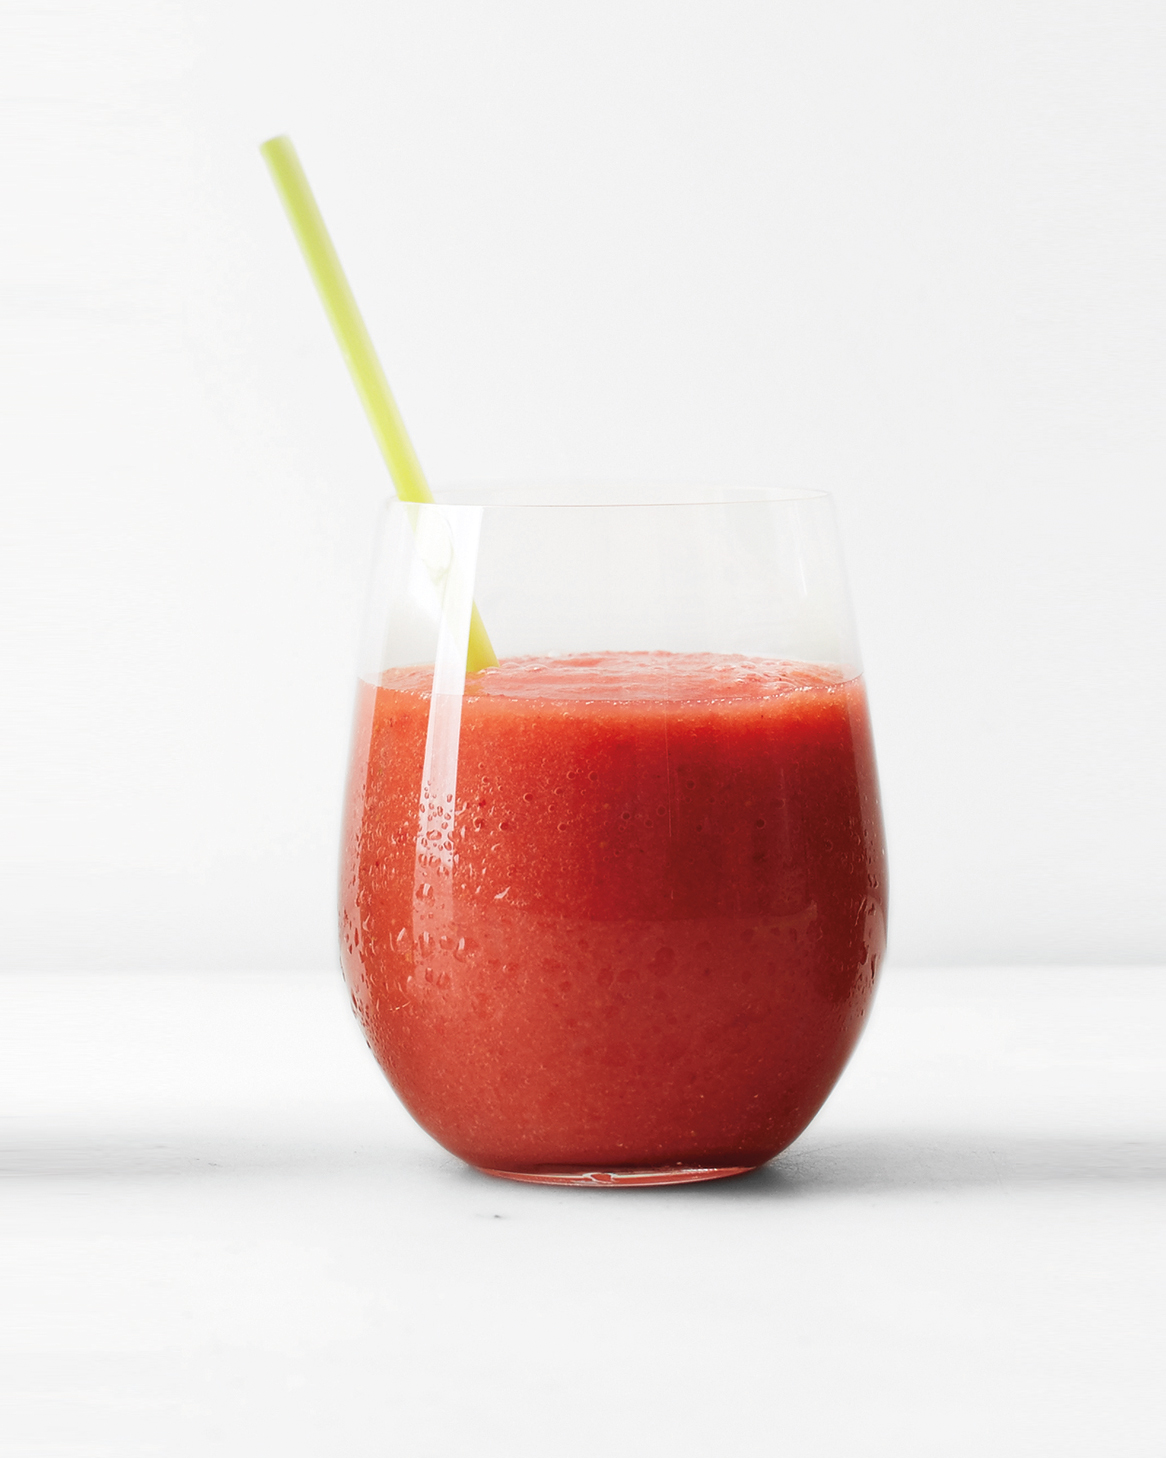 clean-slate-juice-strawberry-grapefruit-ginger-smoothie-0115.jpg